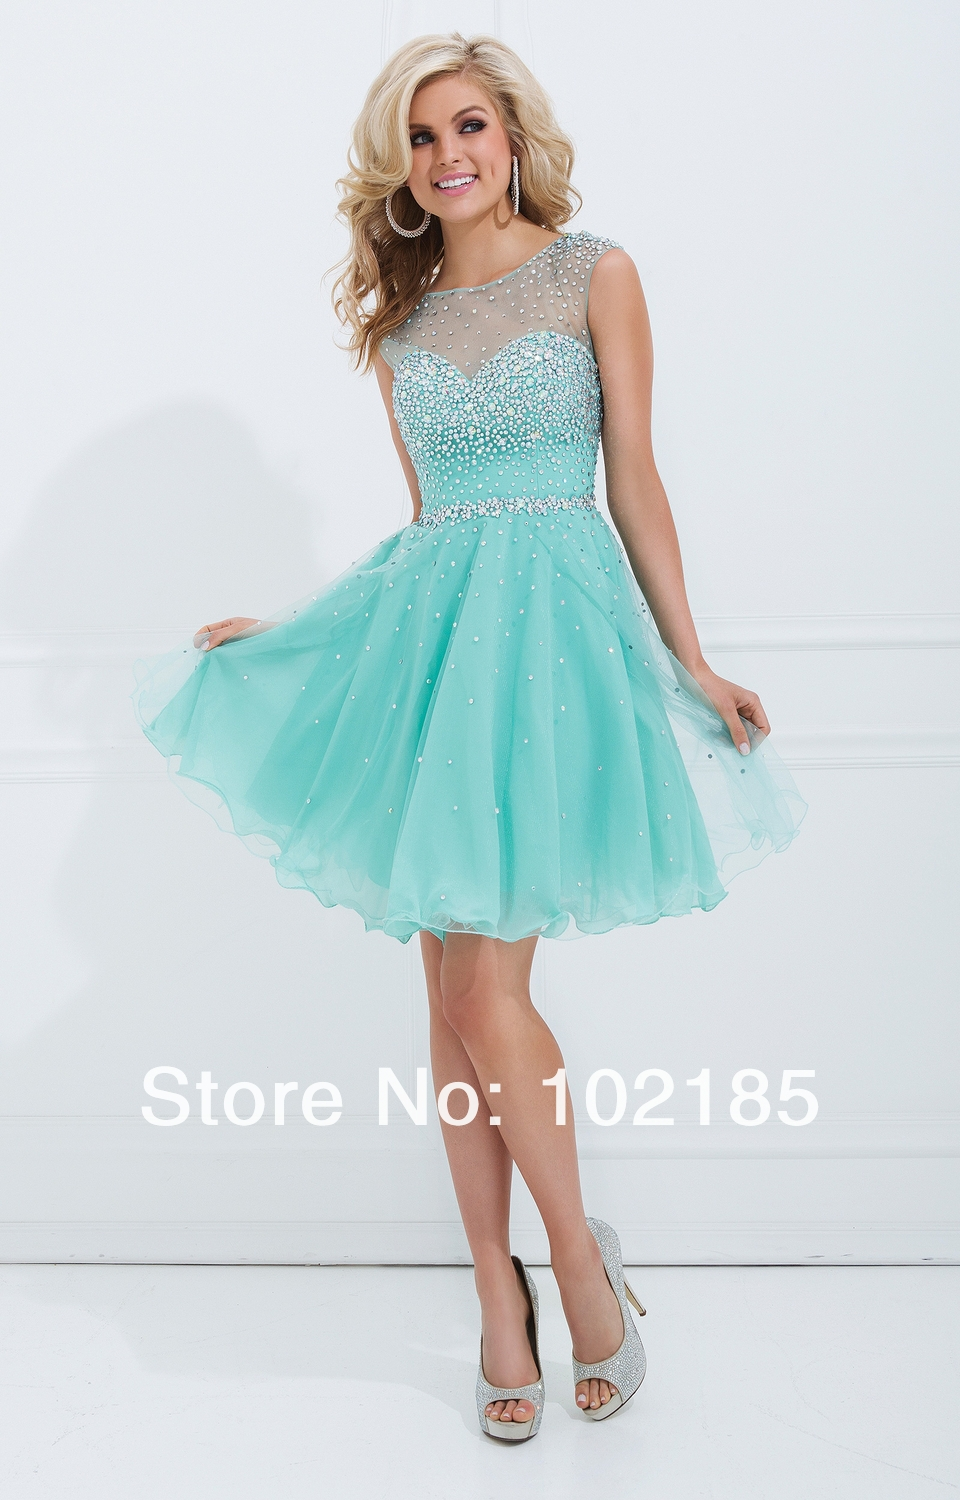 Images of Prom Dresses For Short Girls - Fashion Trends and Models